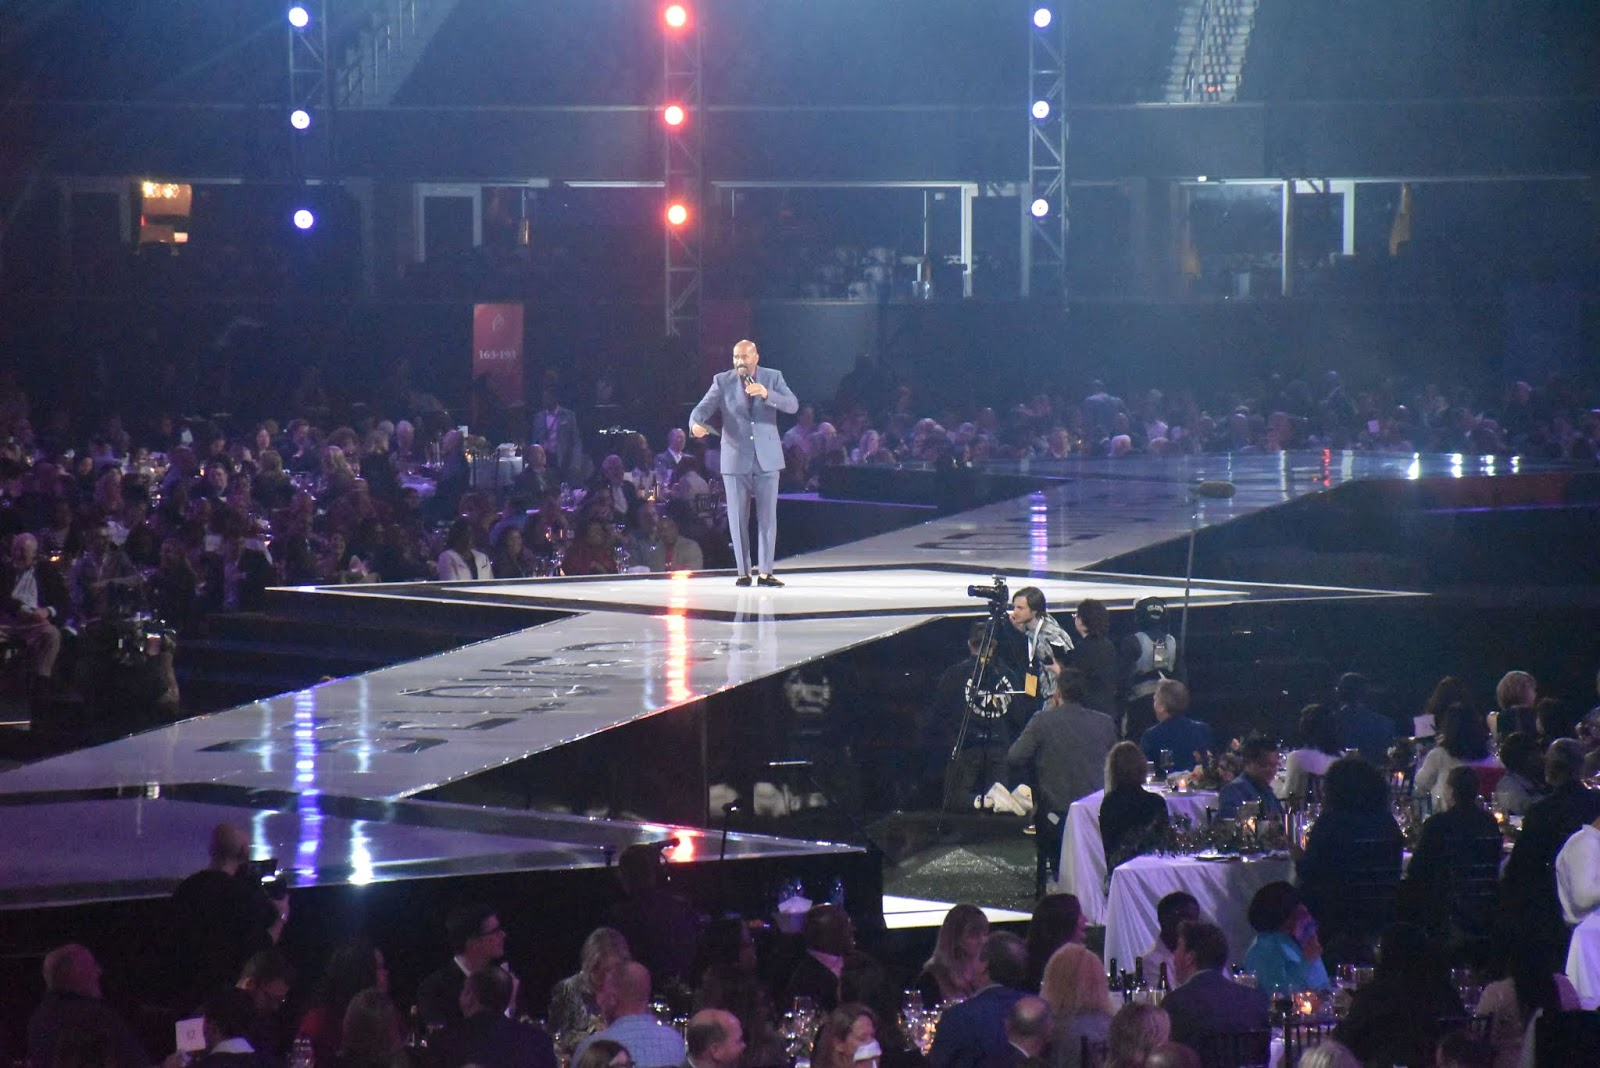 Beloved Benefit at Mercedes Benz Stadium with Steve Harvey